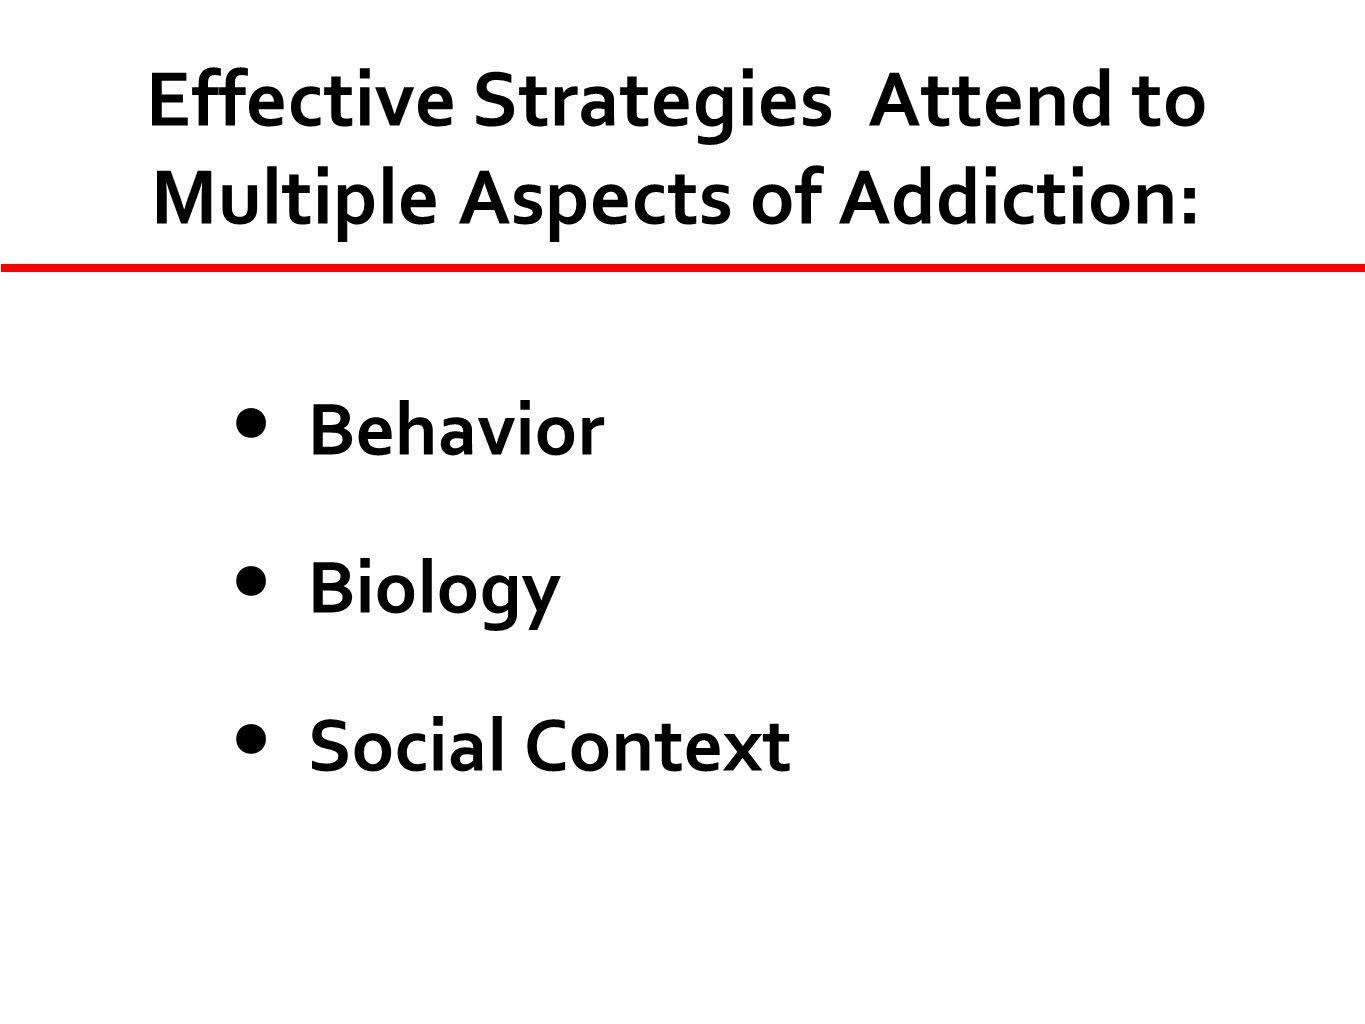 Effective Strategies Attend to Multiple Aspects of Addiction: